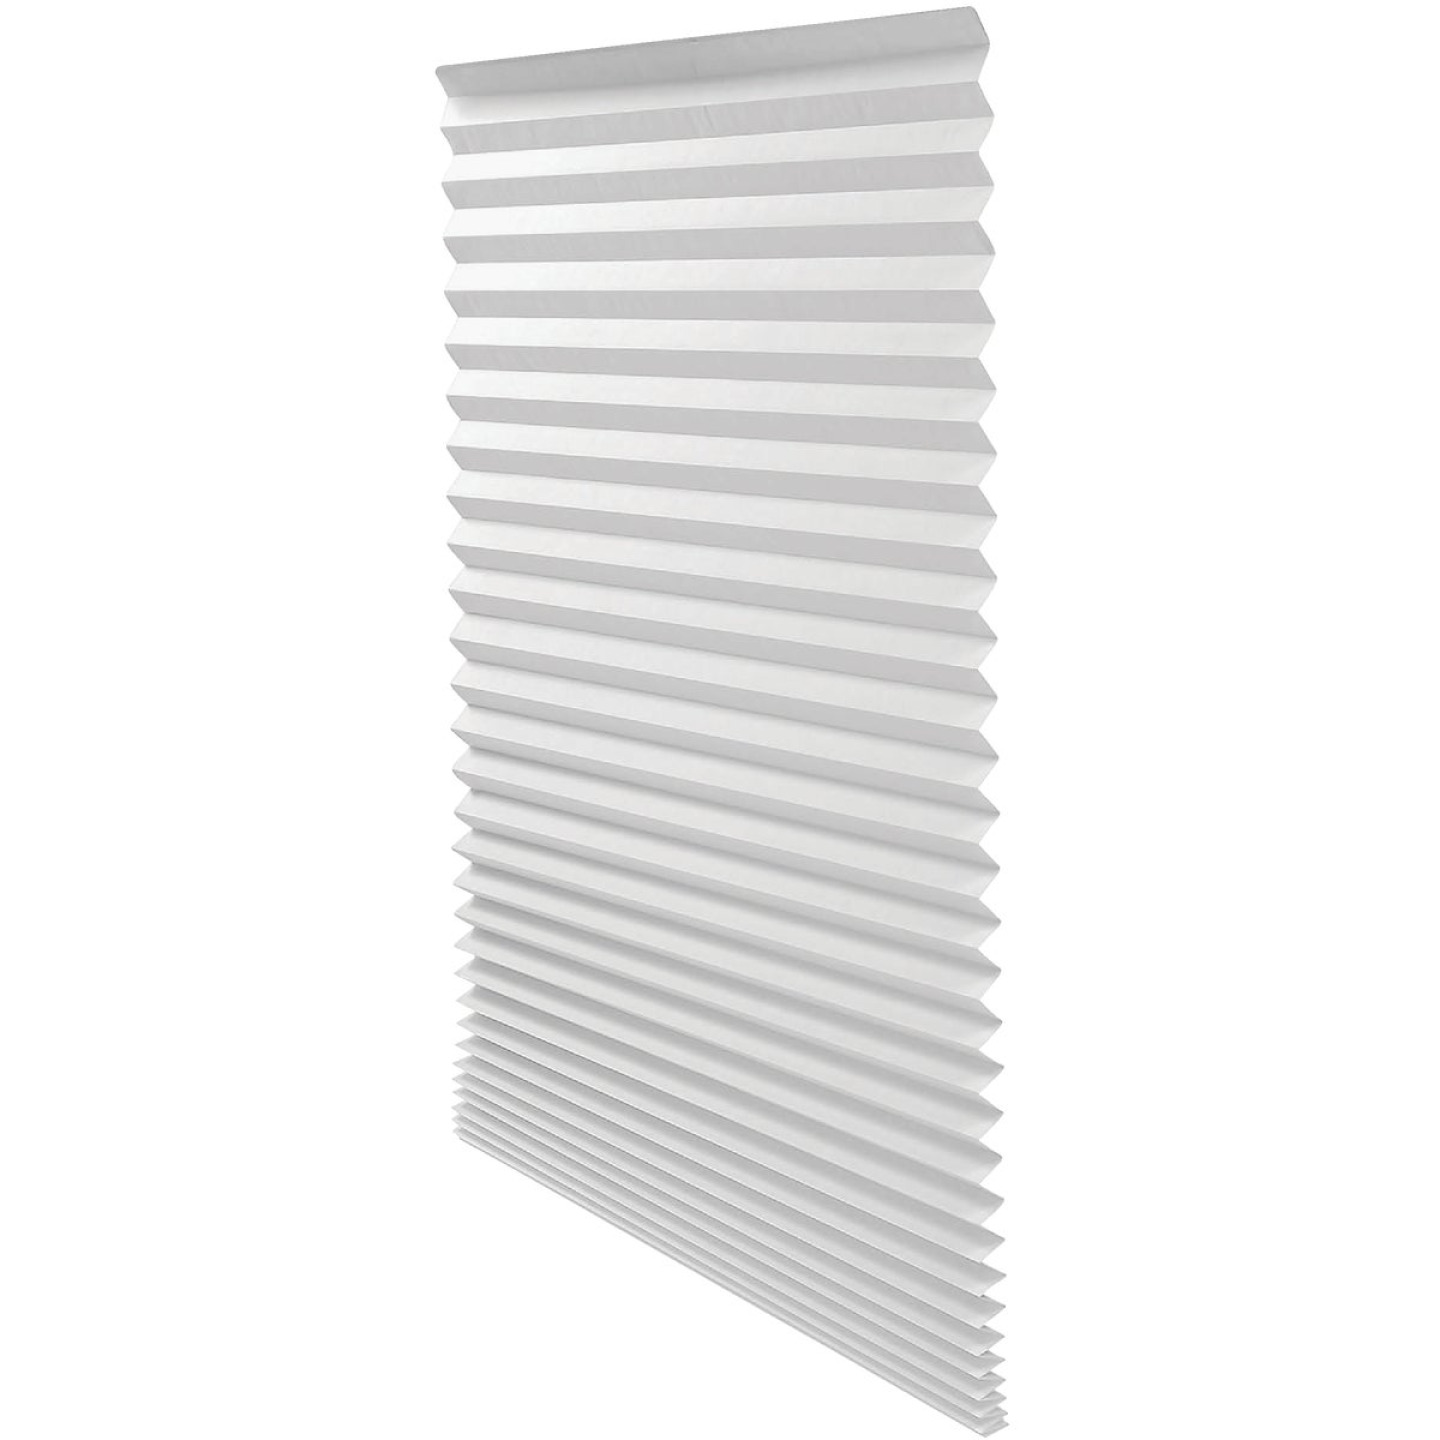 Redi Shade 48 In. x 72 In. Paper Shade Image 1